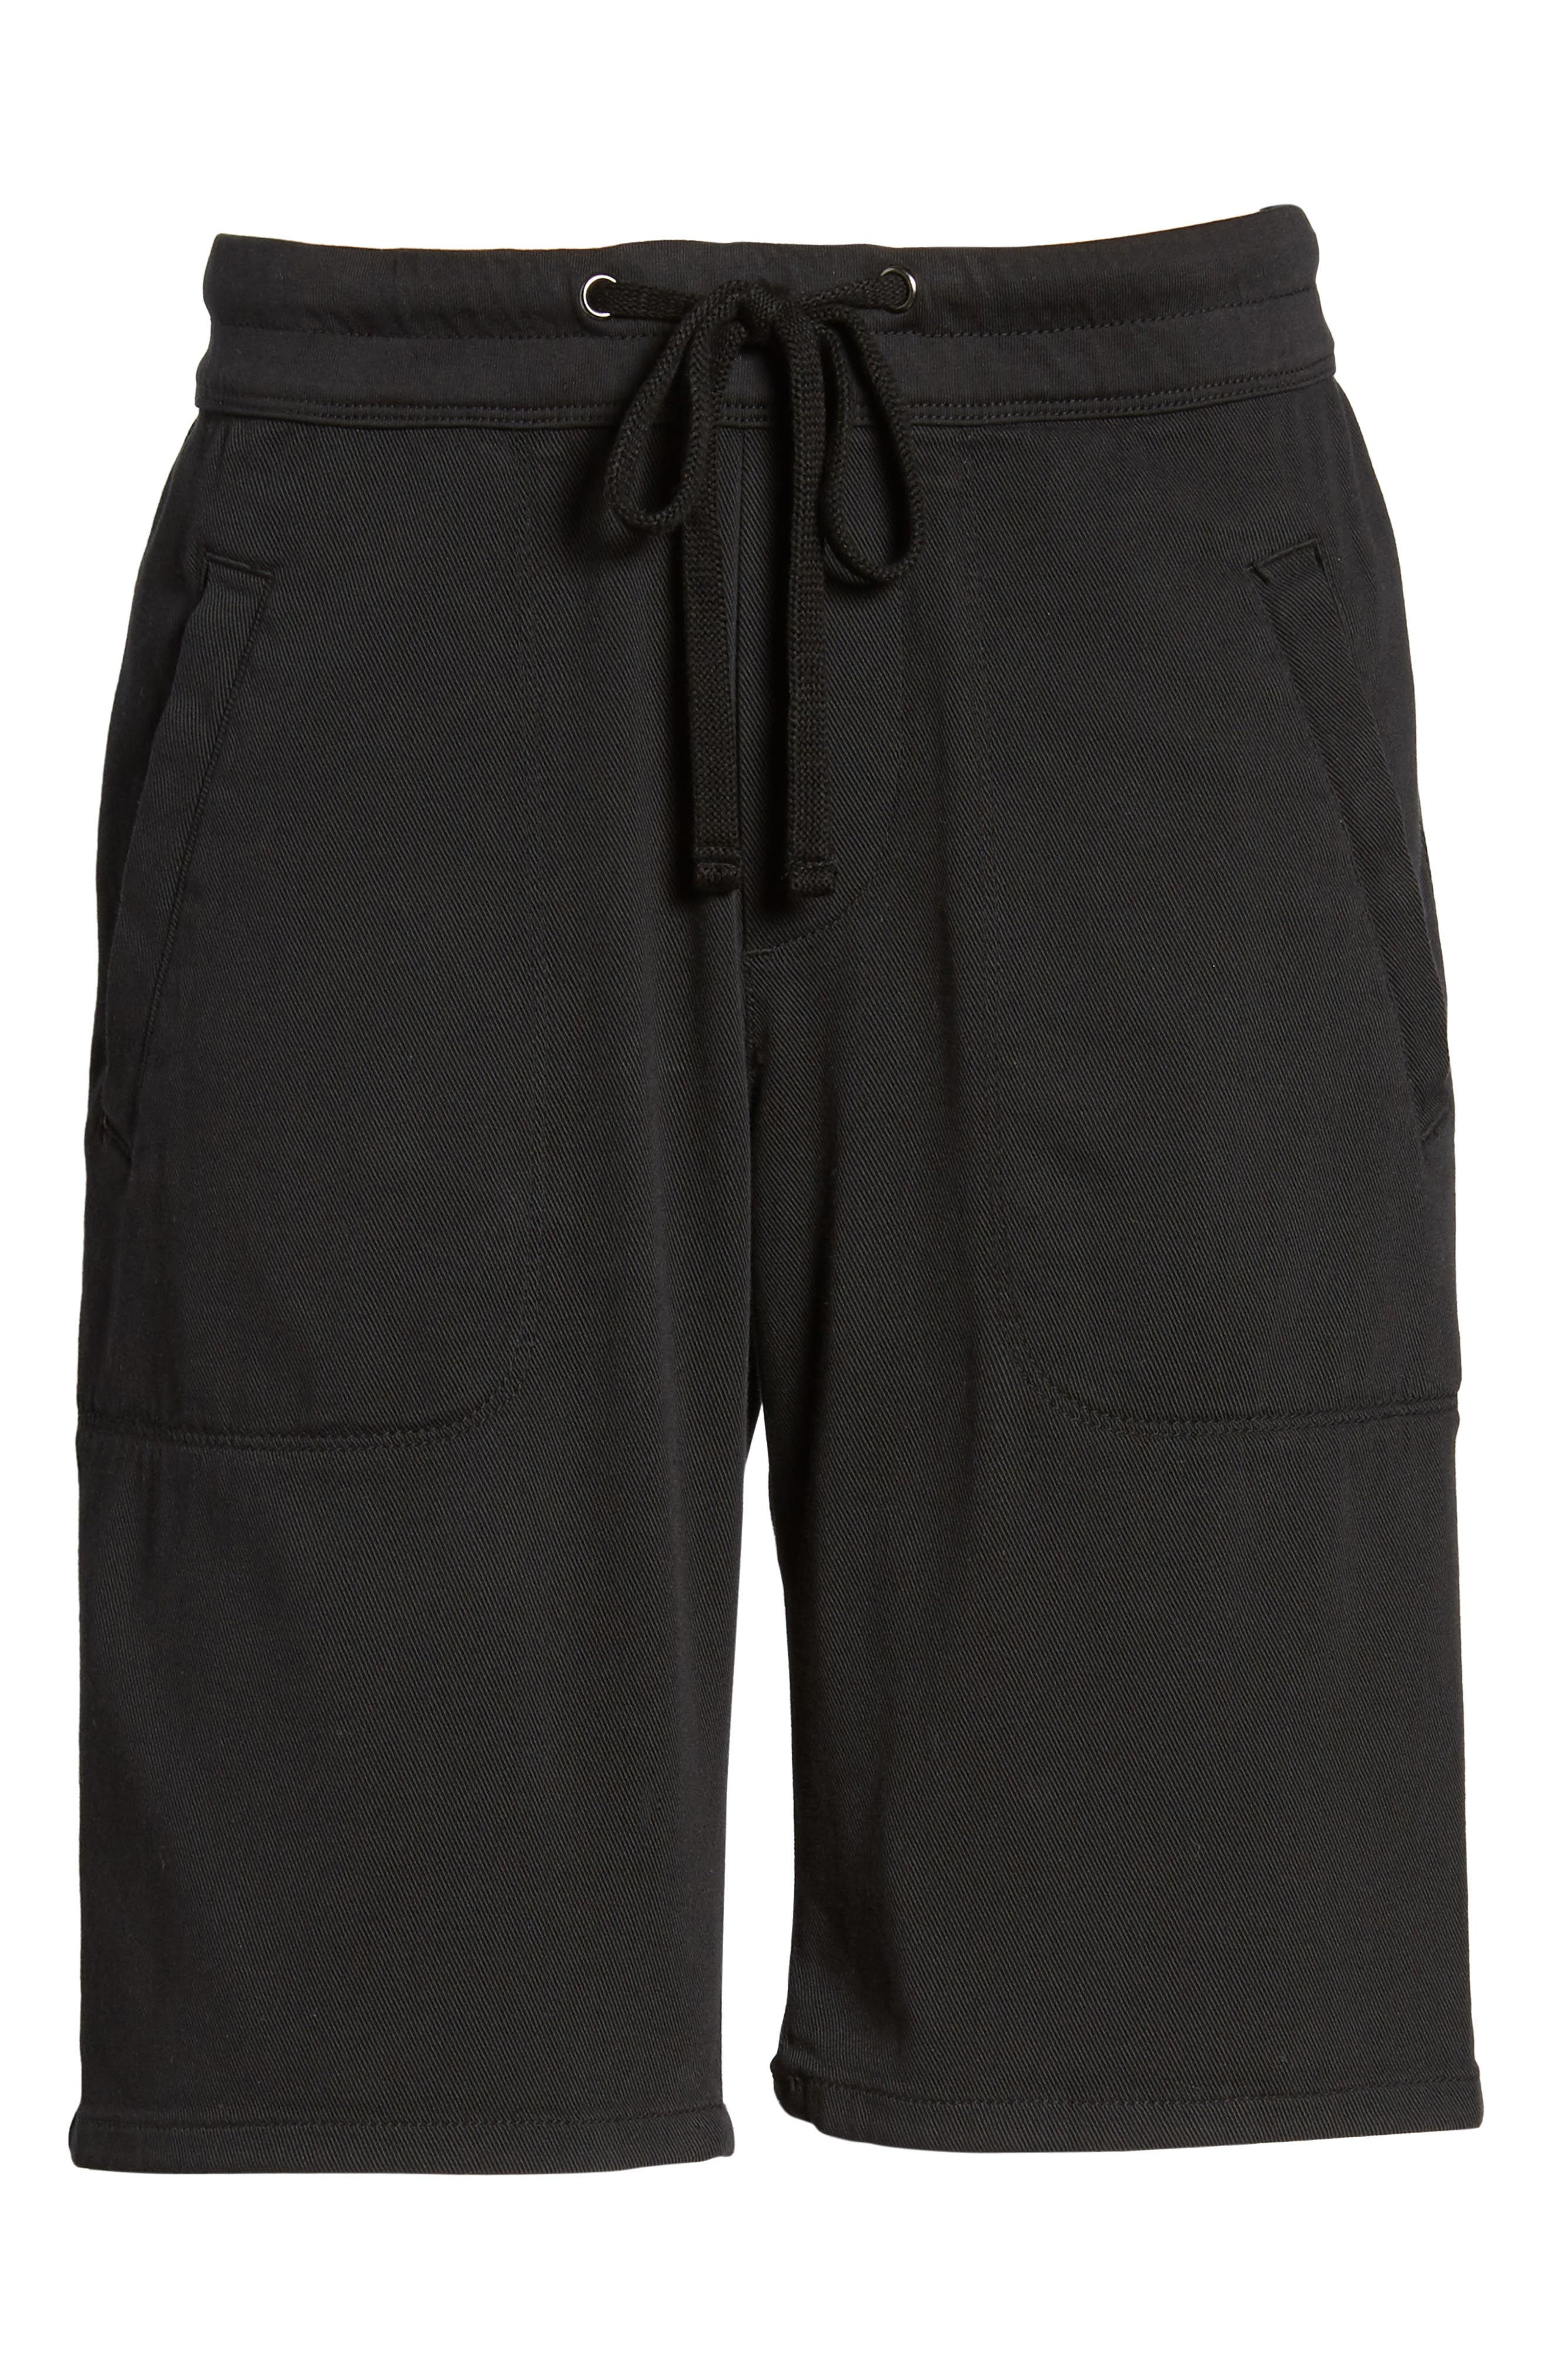 Soft Drape Utility Shorts,                             Alternate thumbnail 6, color,                             001